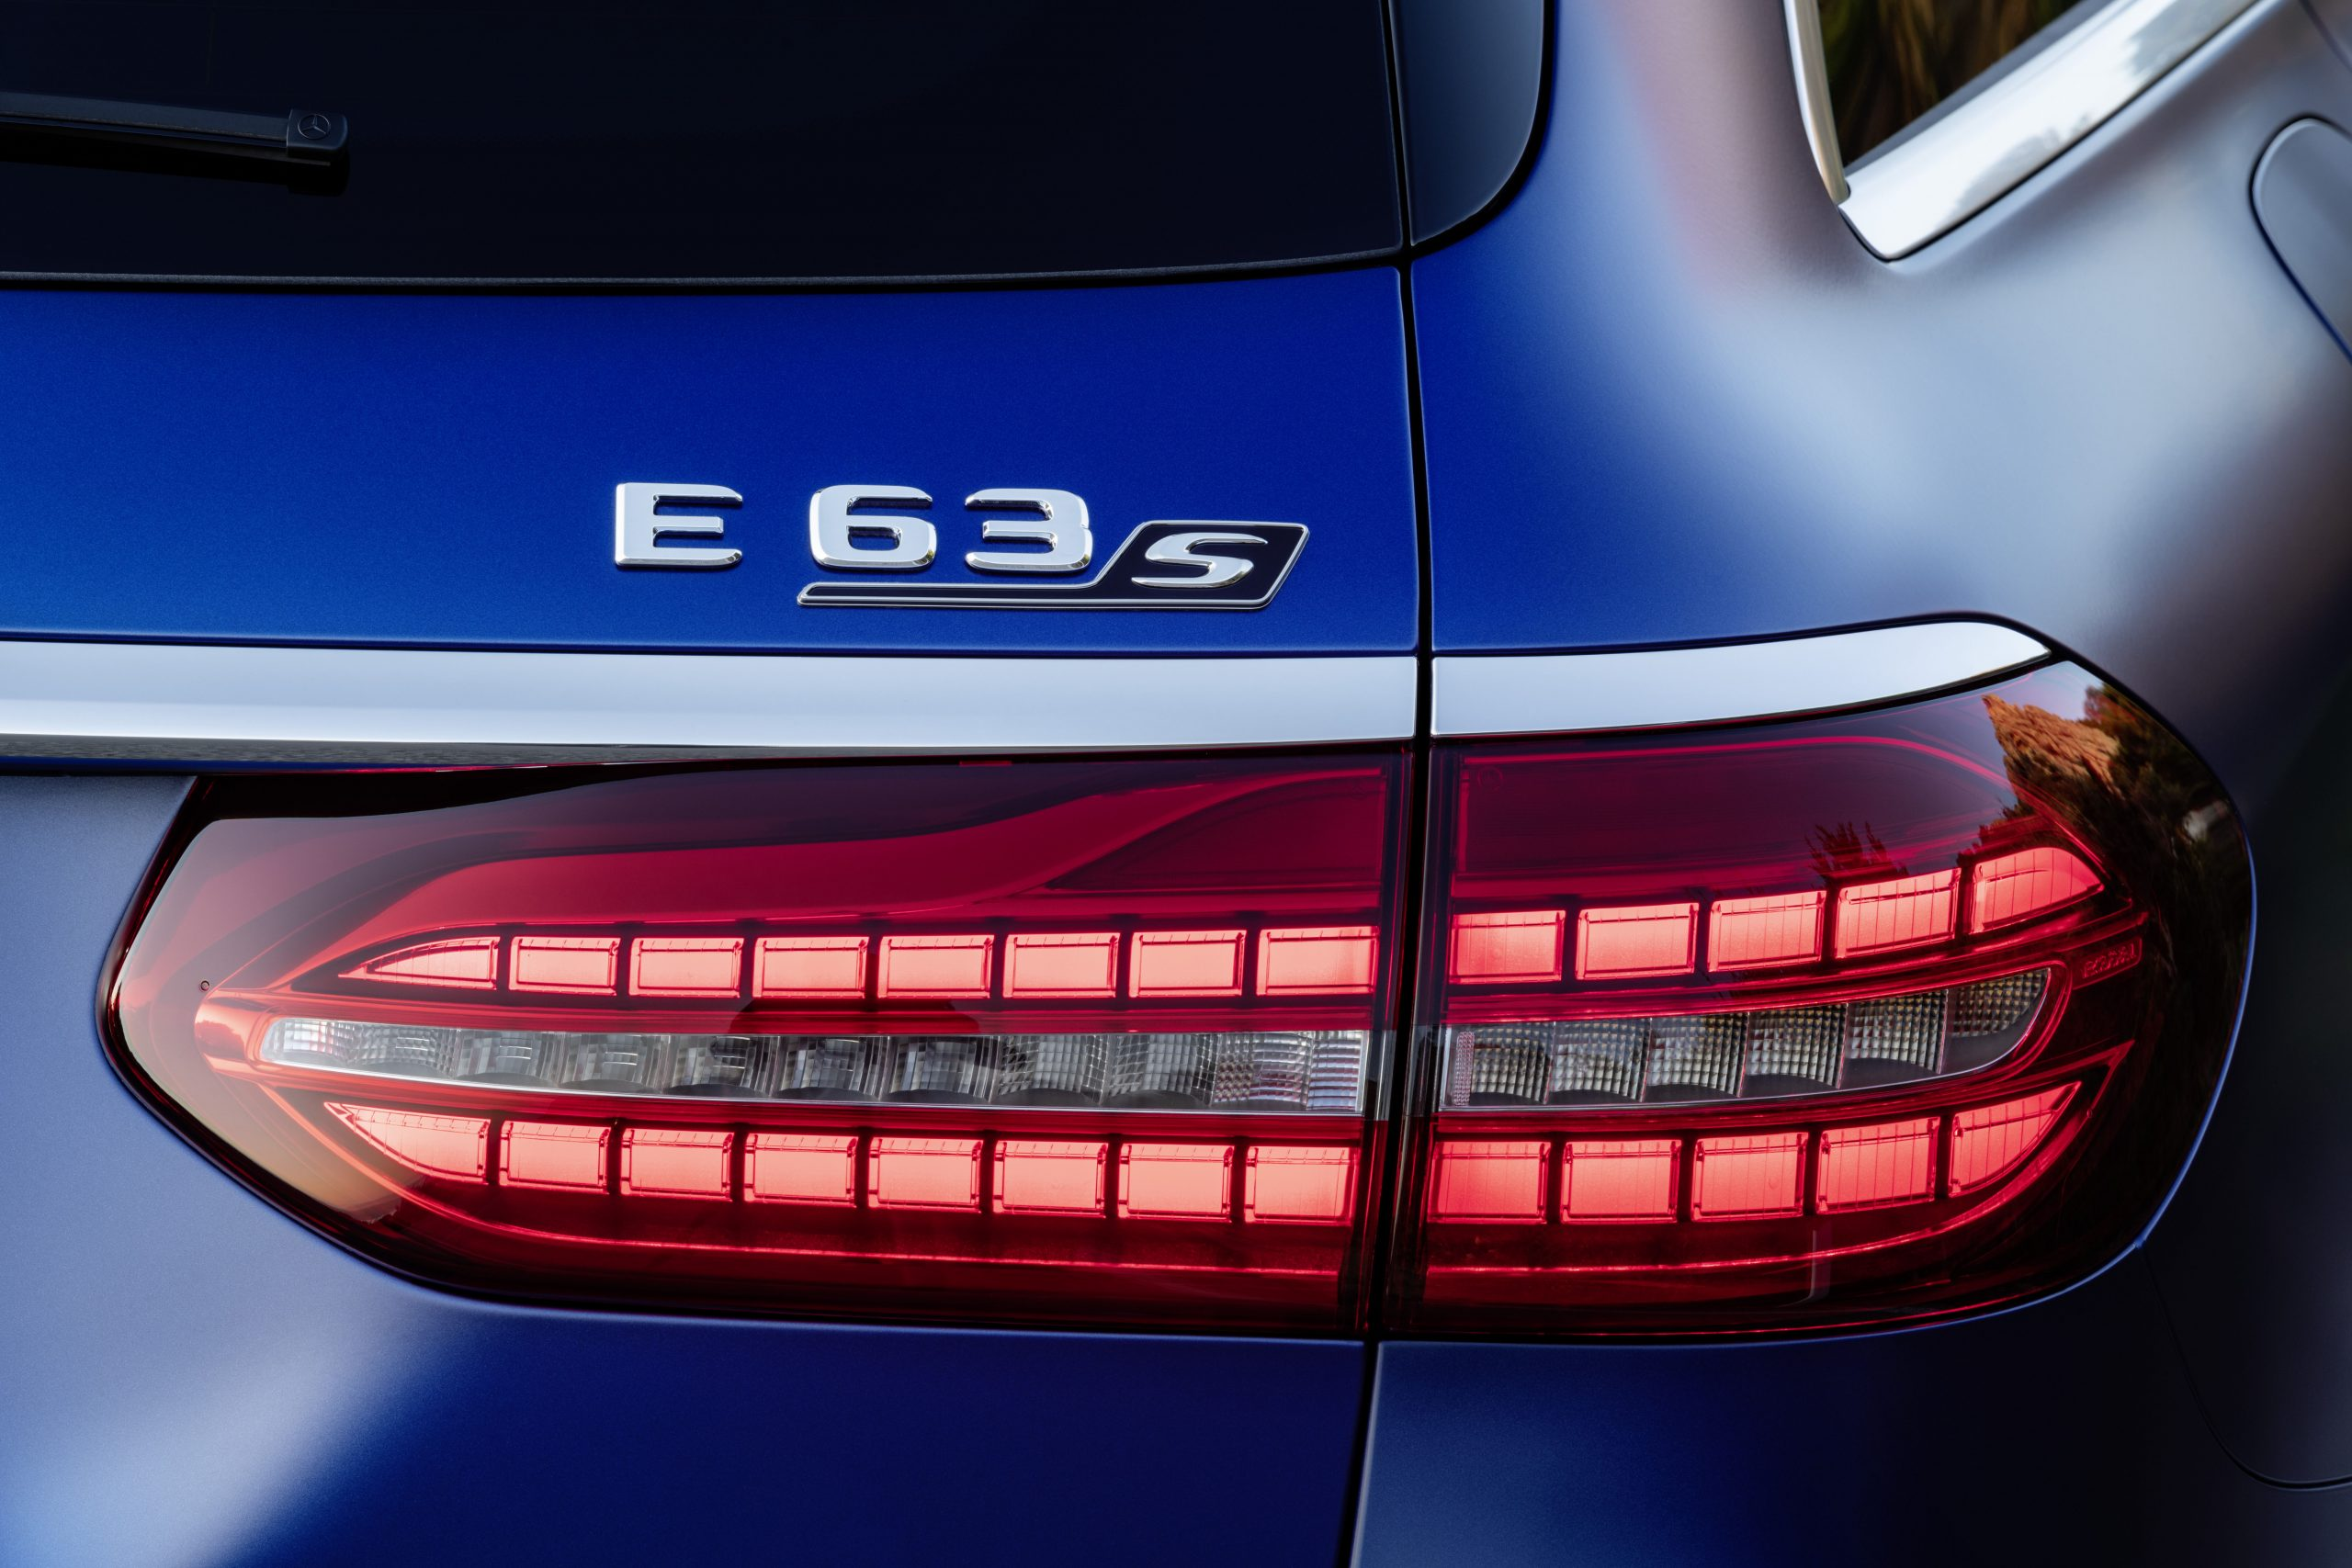 2021 Mercedes-AMG E63 S badge and light